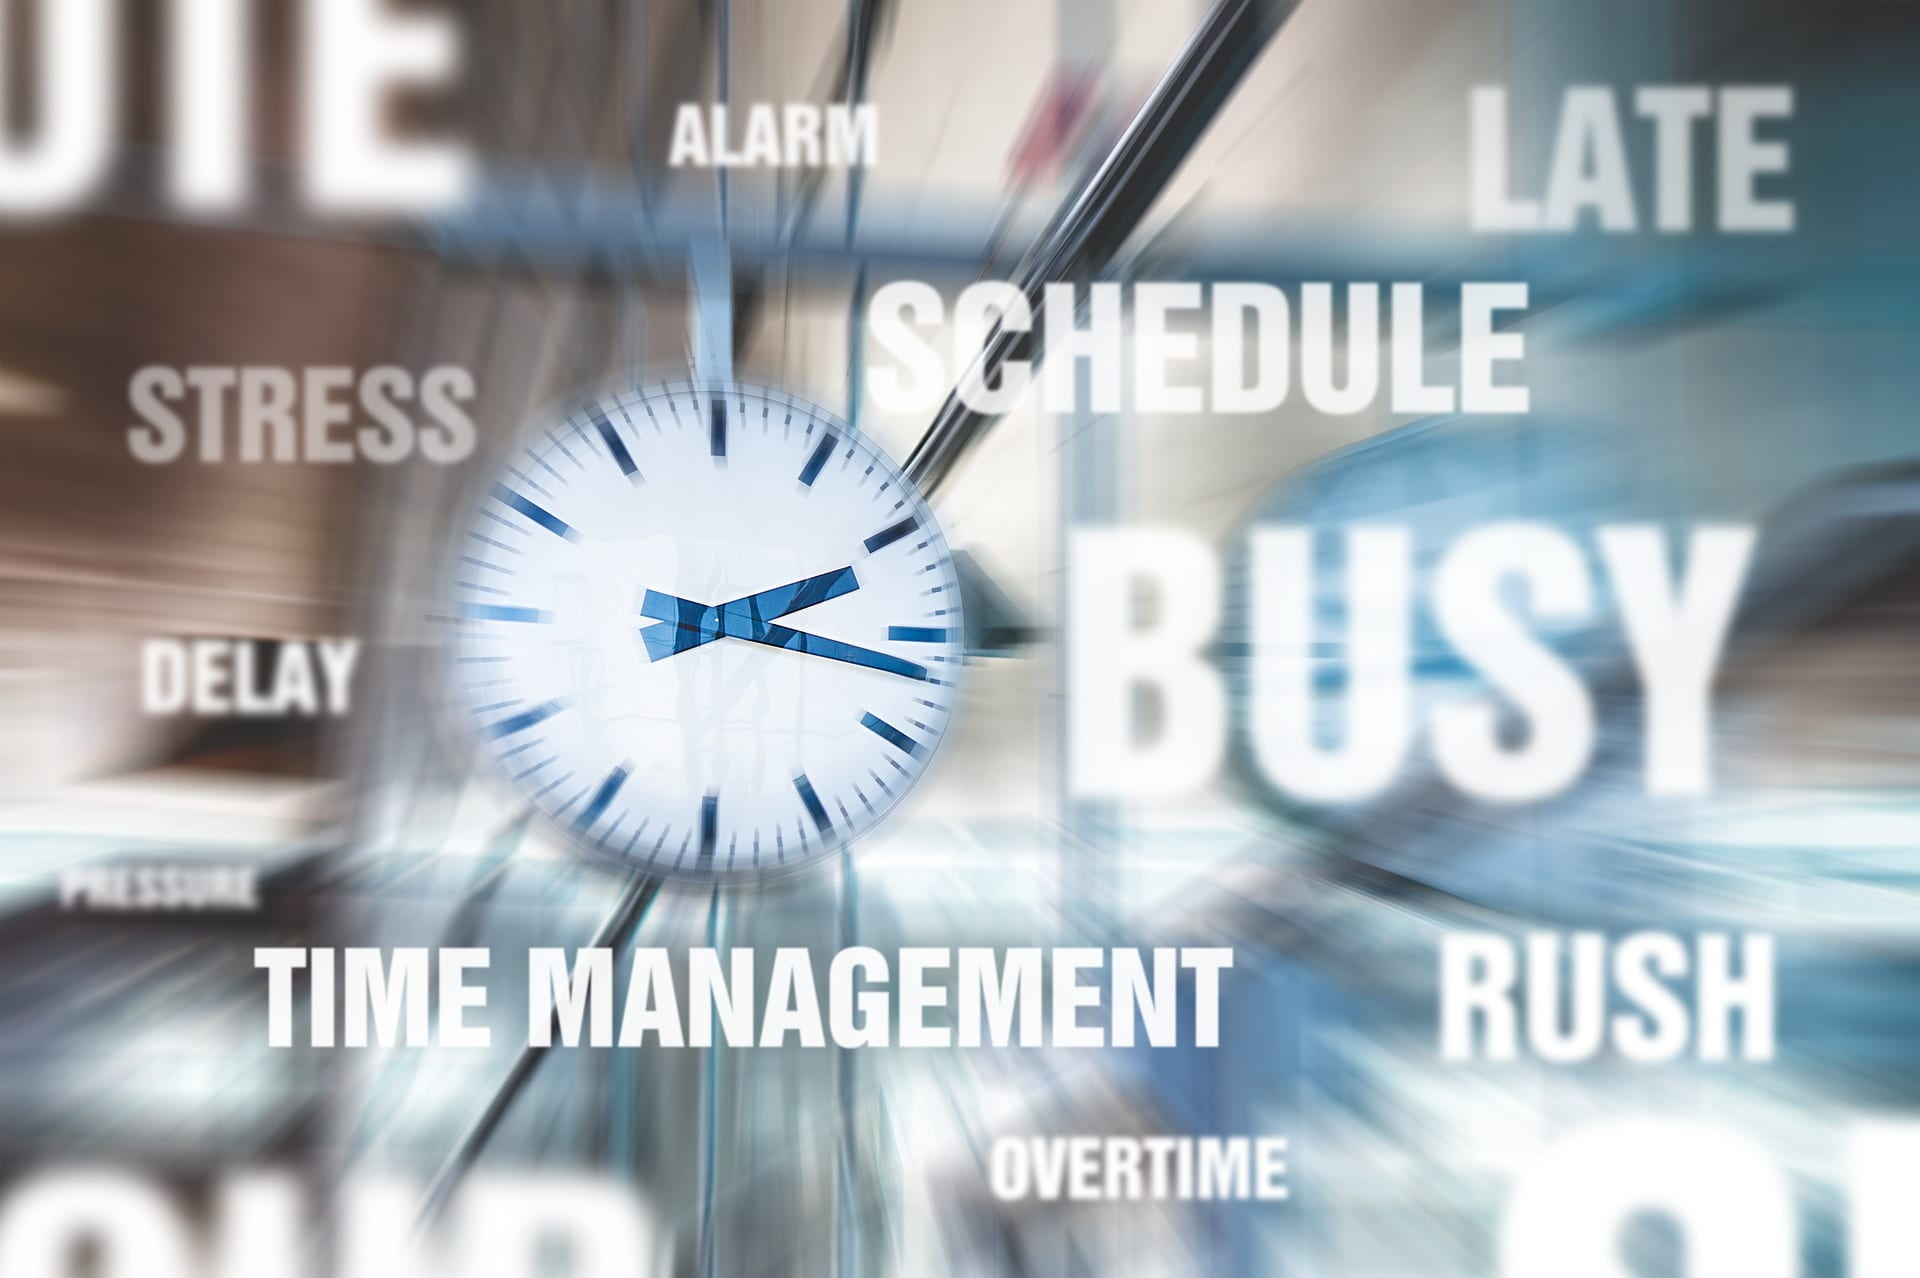 """A graphic with a stopwatch and several time-related words like """"Time Management"""" and """"Busy"""""""